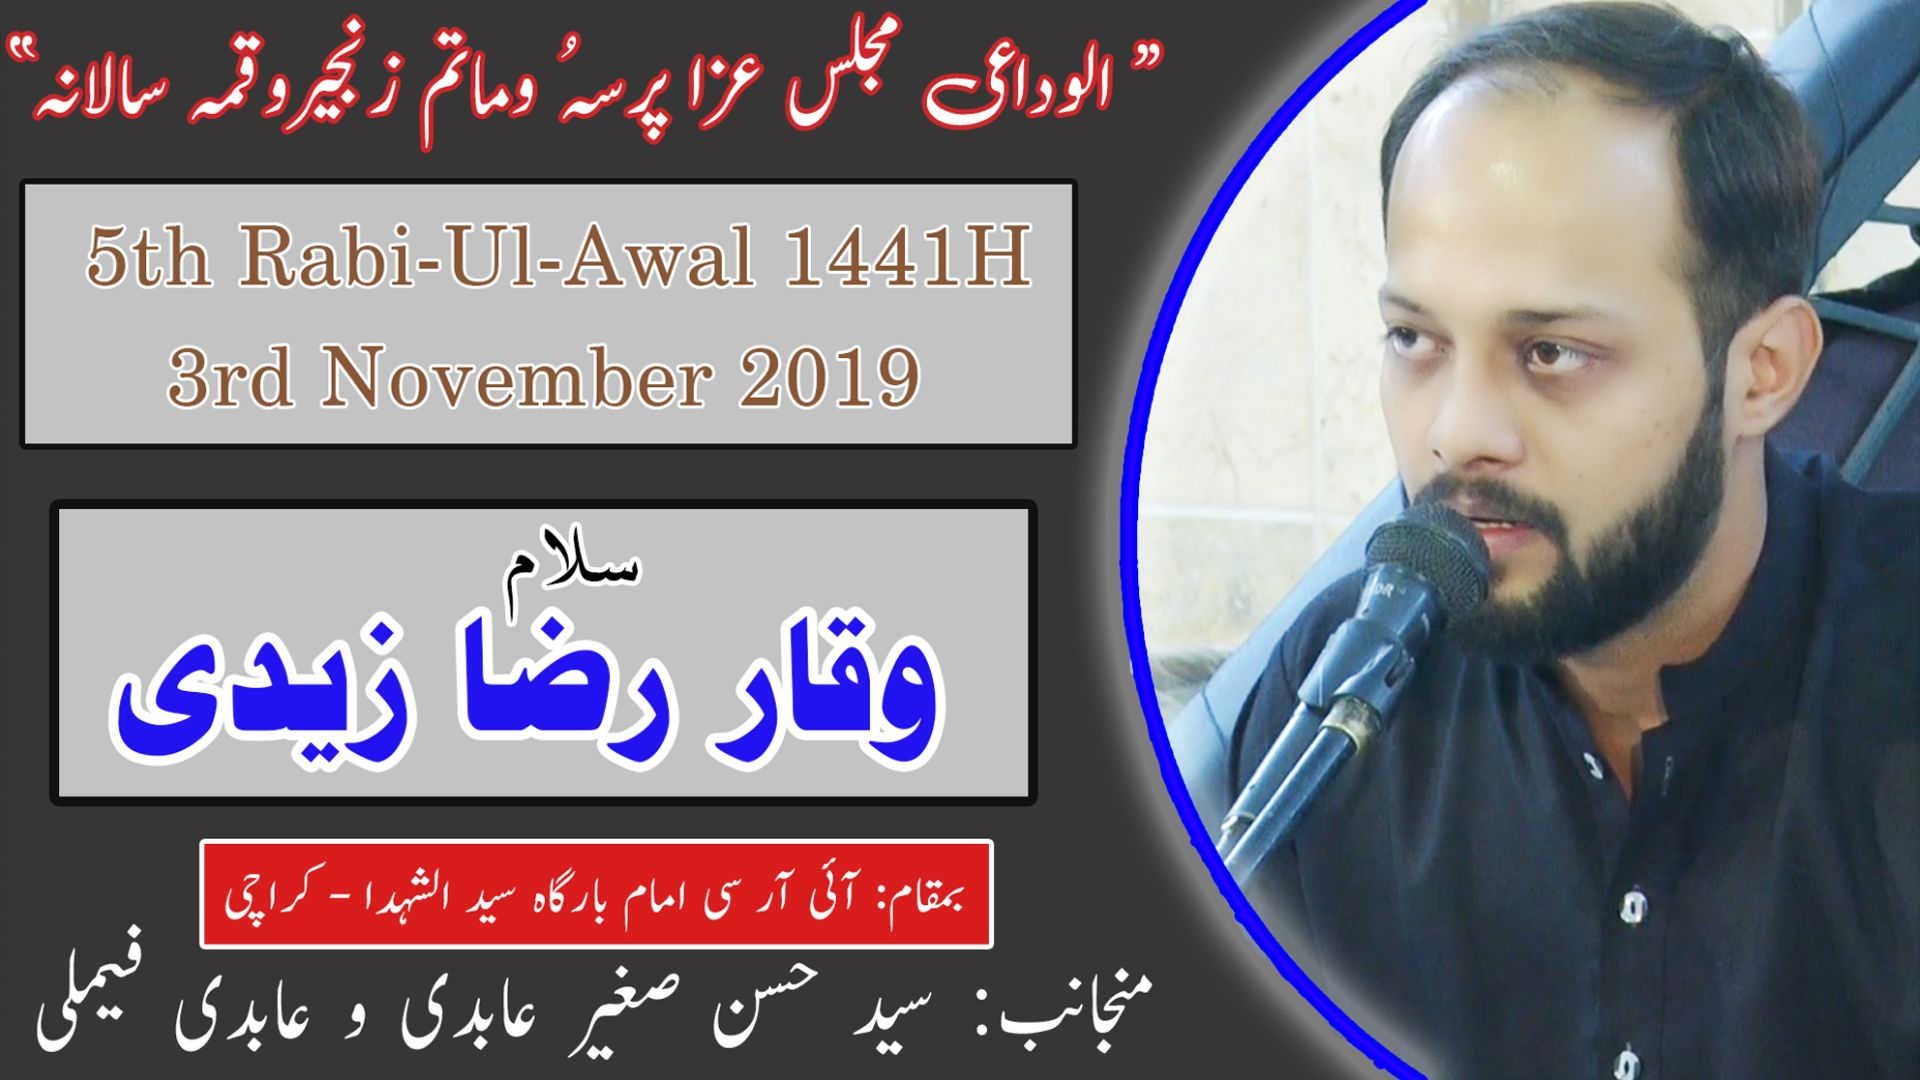 Salam | Waqar Raza Zaidi | 5th Rabi Awal 1441/2019 - Imam Bargah Islamic Research Center - Karachi